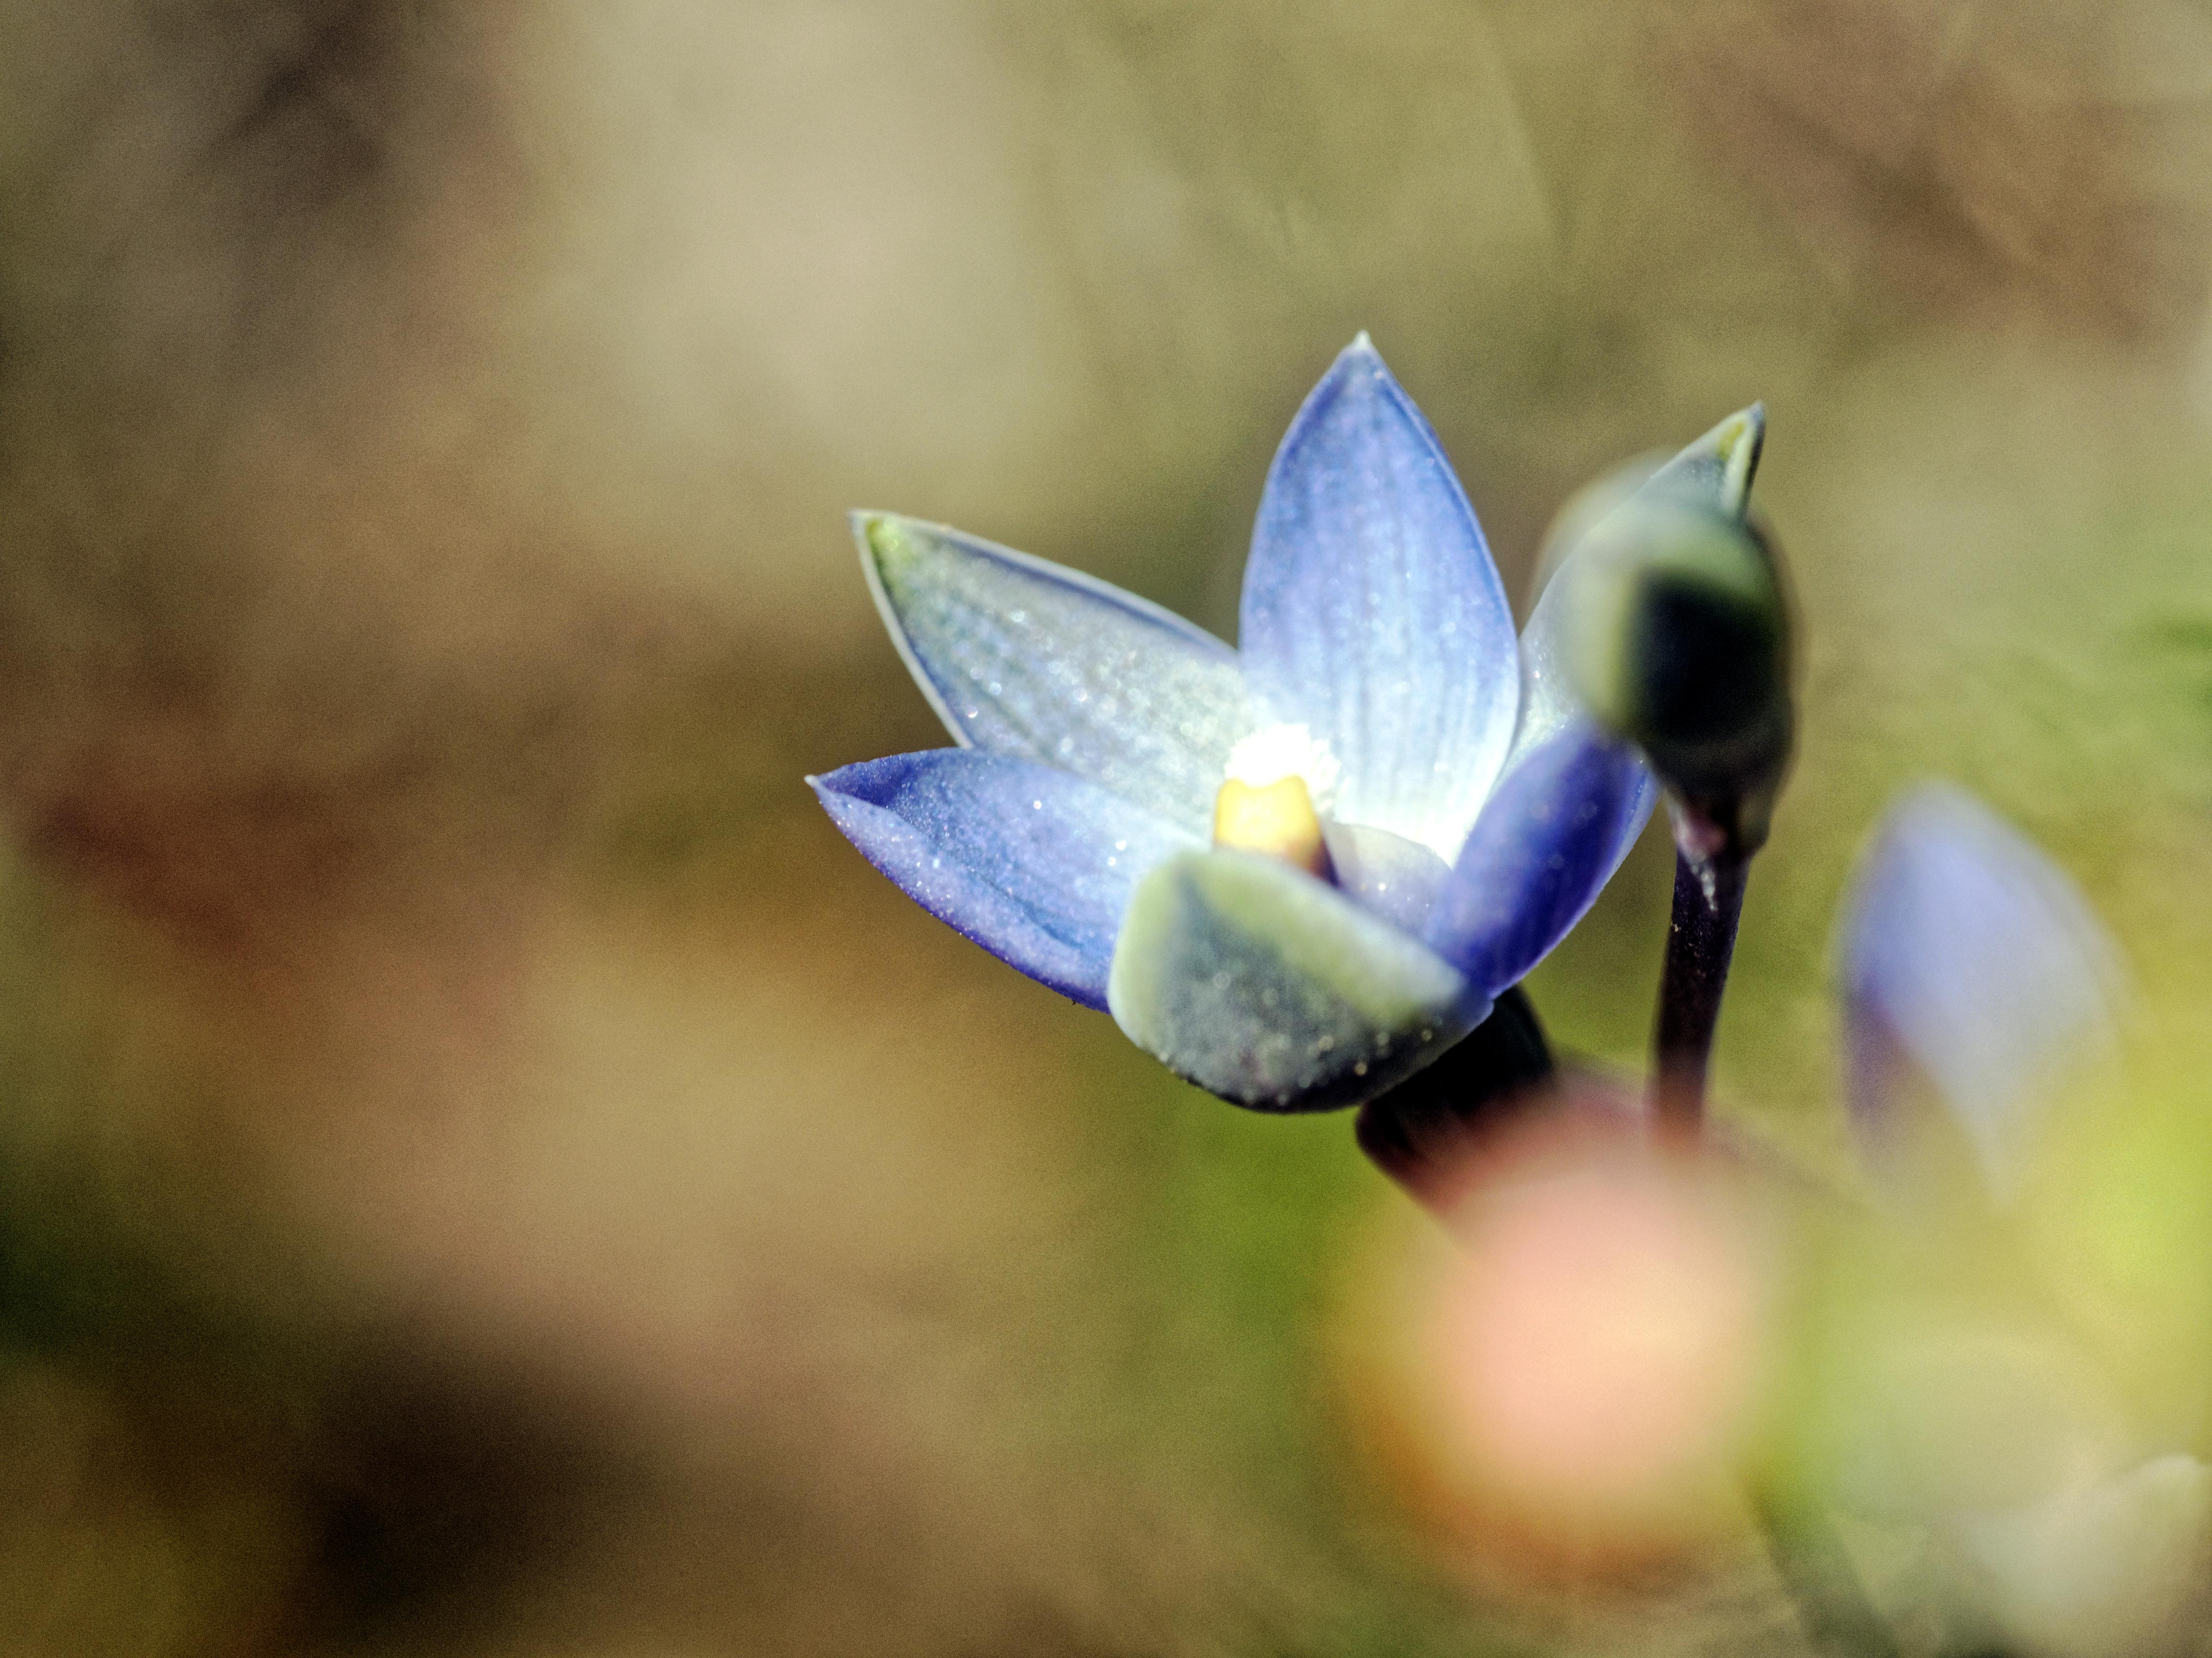 This should be Thelymitra-pauciflora-15.jpeg.  Is it missing?